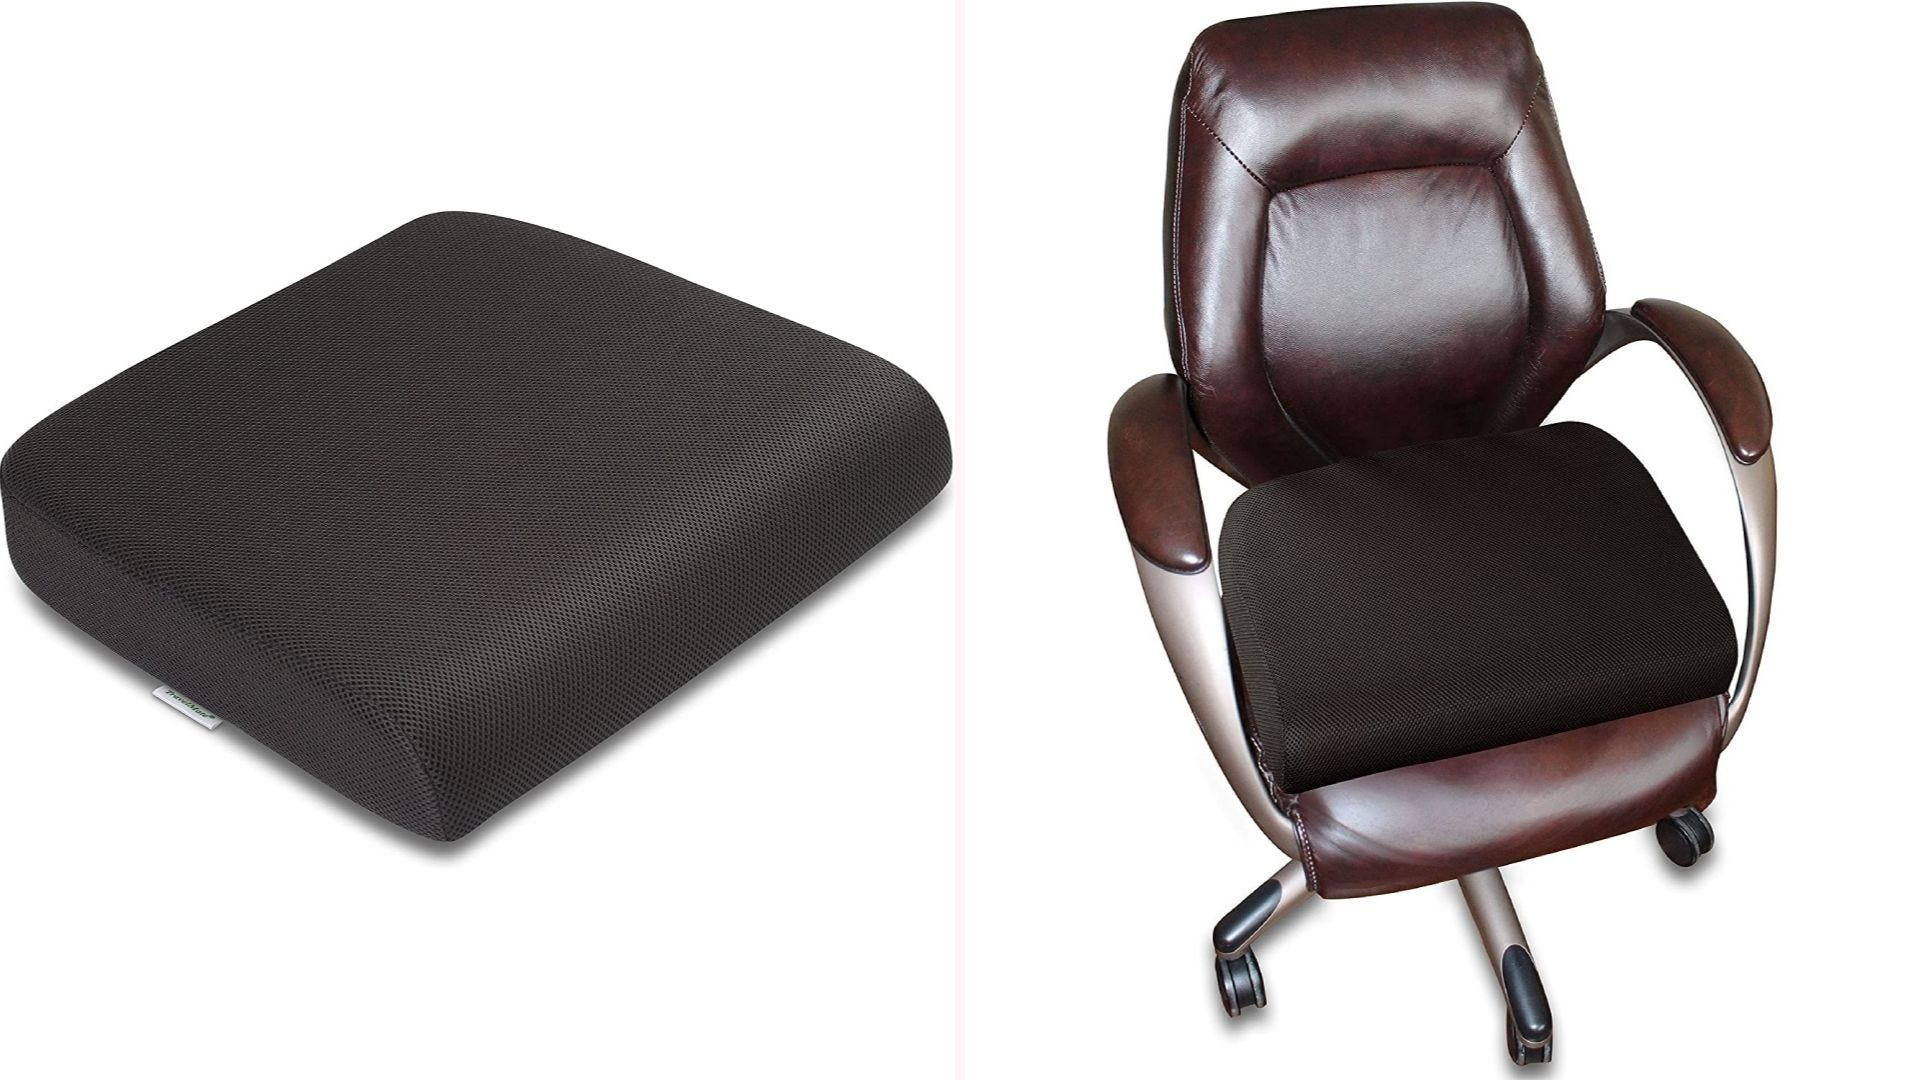 On the left, a black square seat cushion. On the right, a leather office chair with the same cushion.